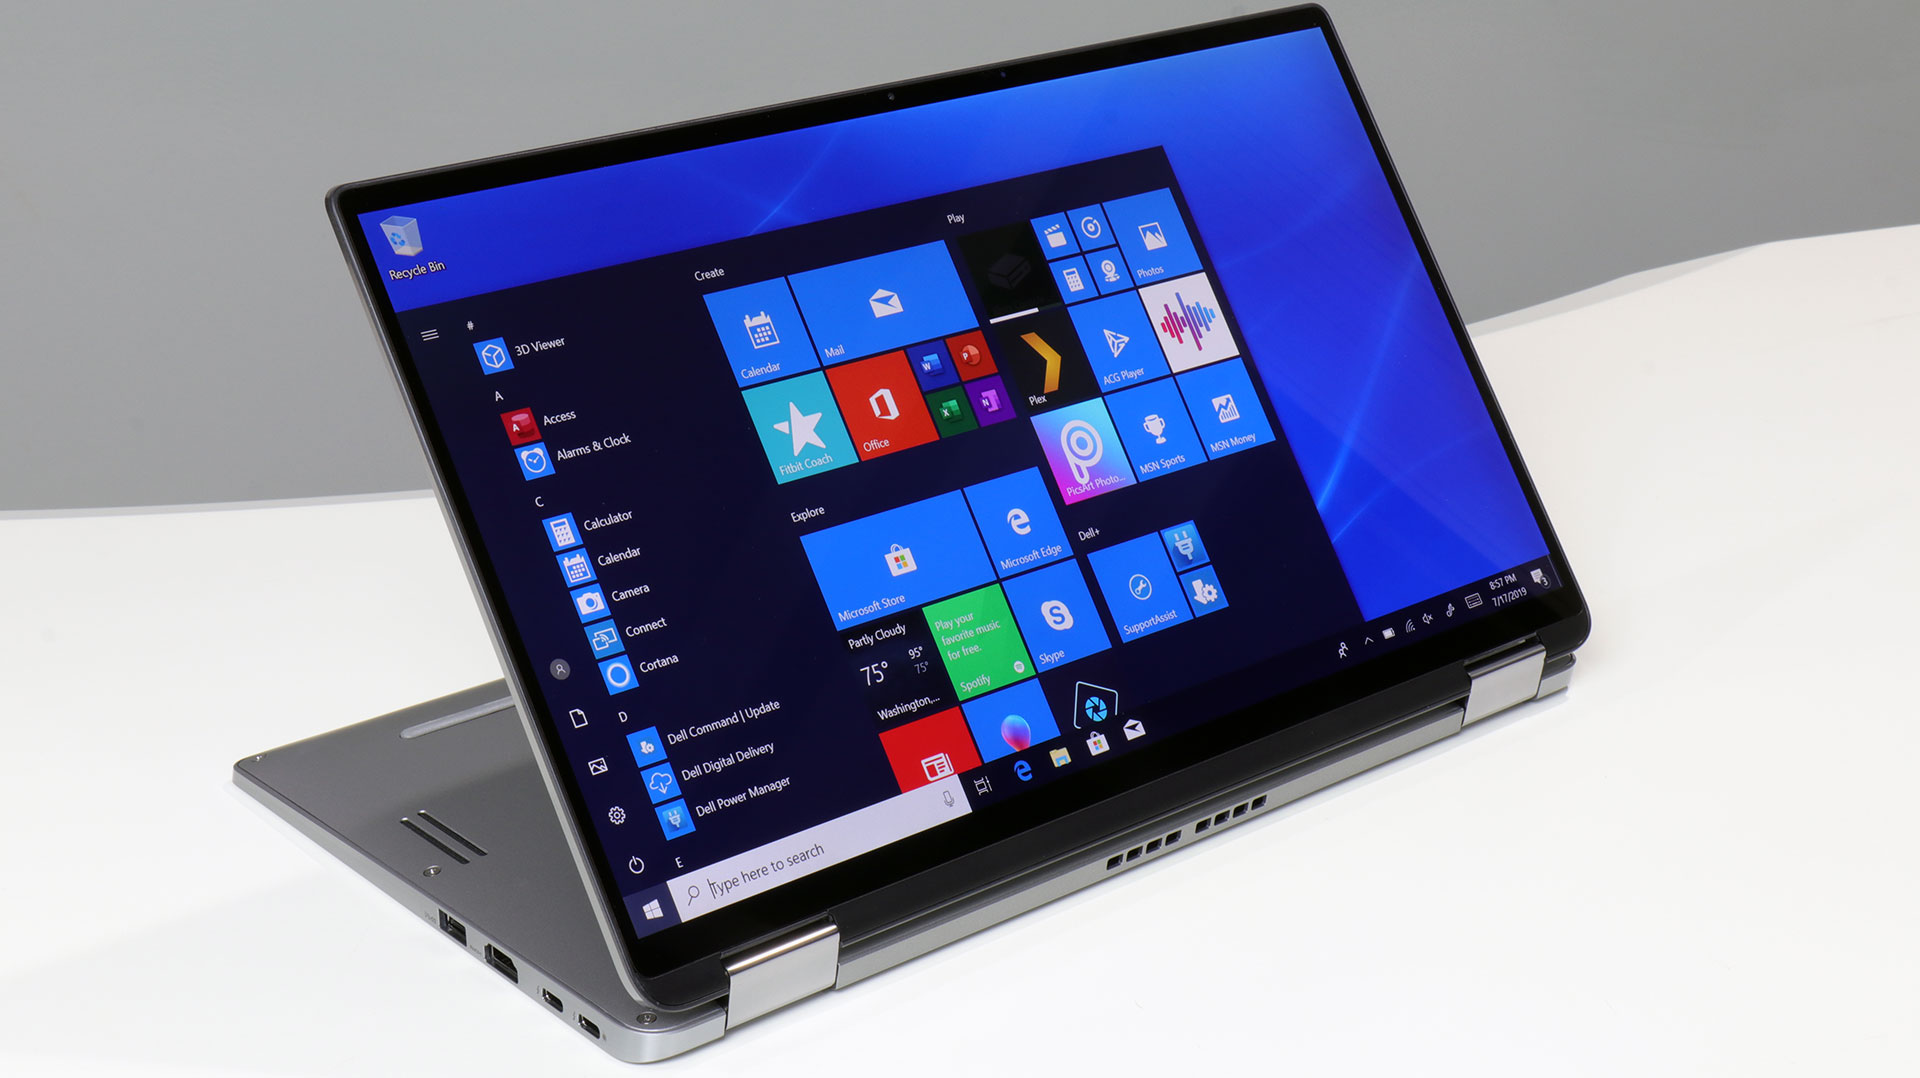 Dell Latitude 7400 2-In-1 Review: A Lethal Weapon For Road Warriors